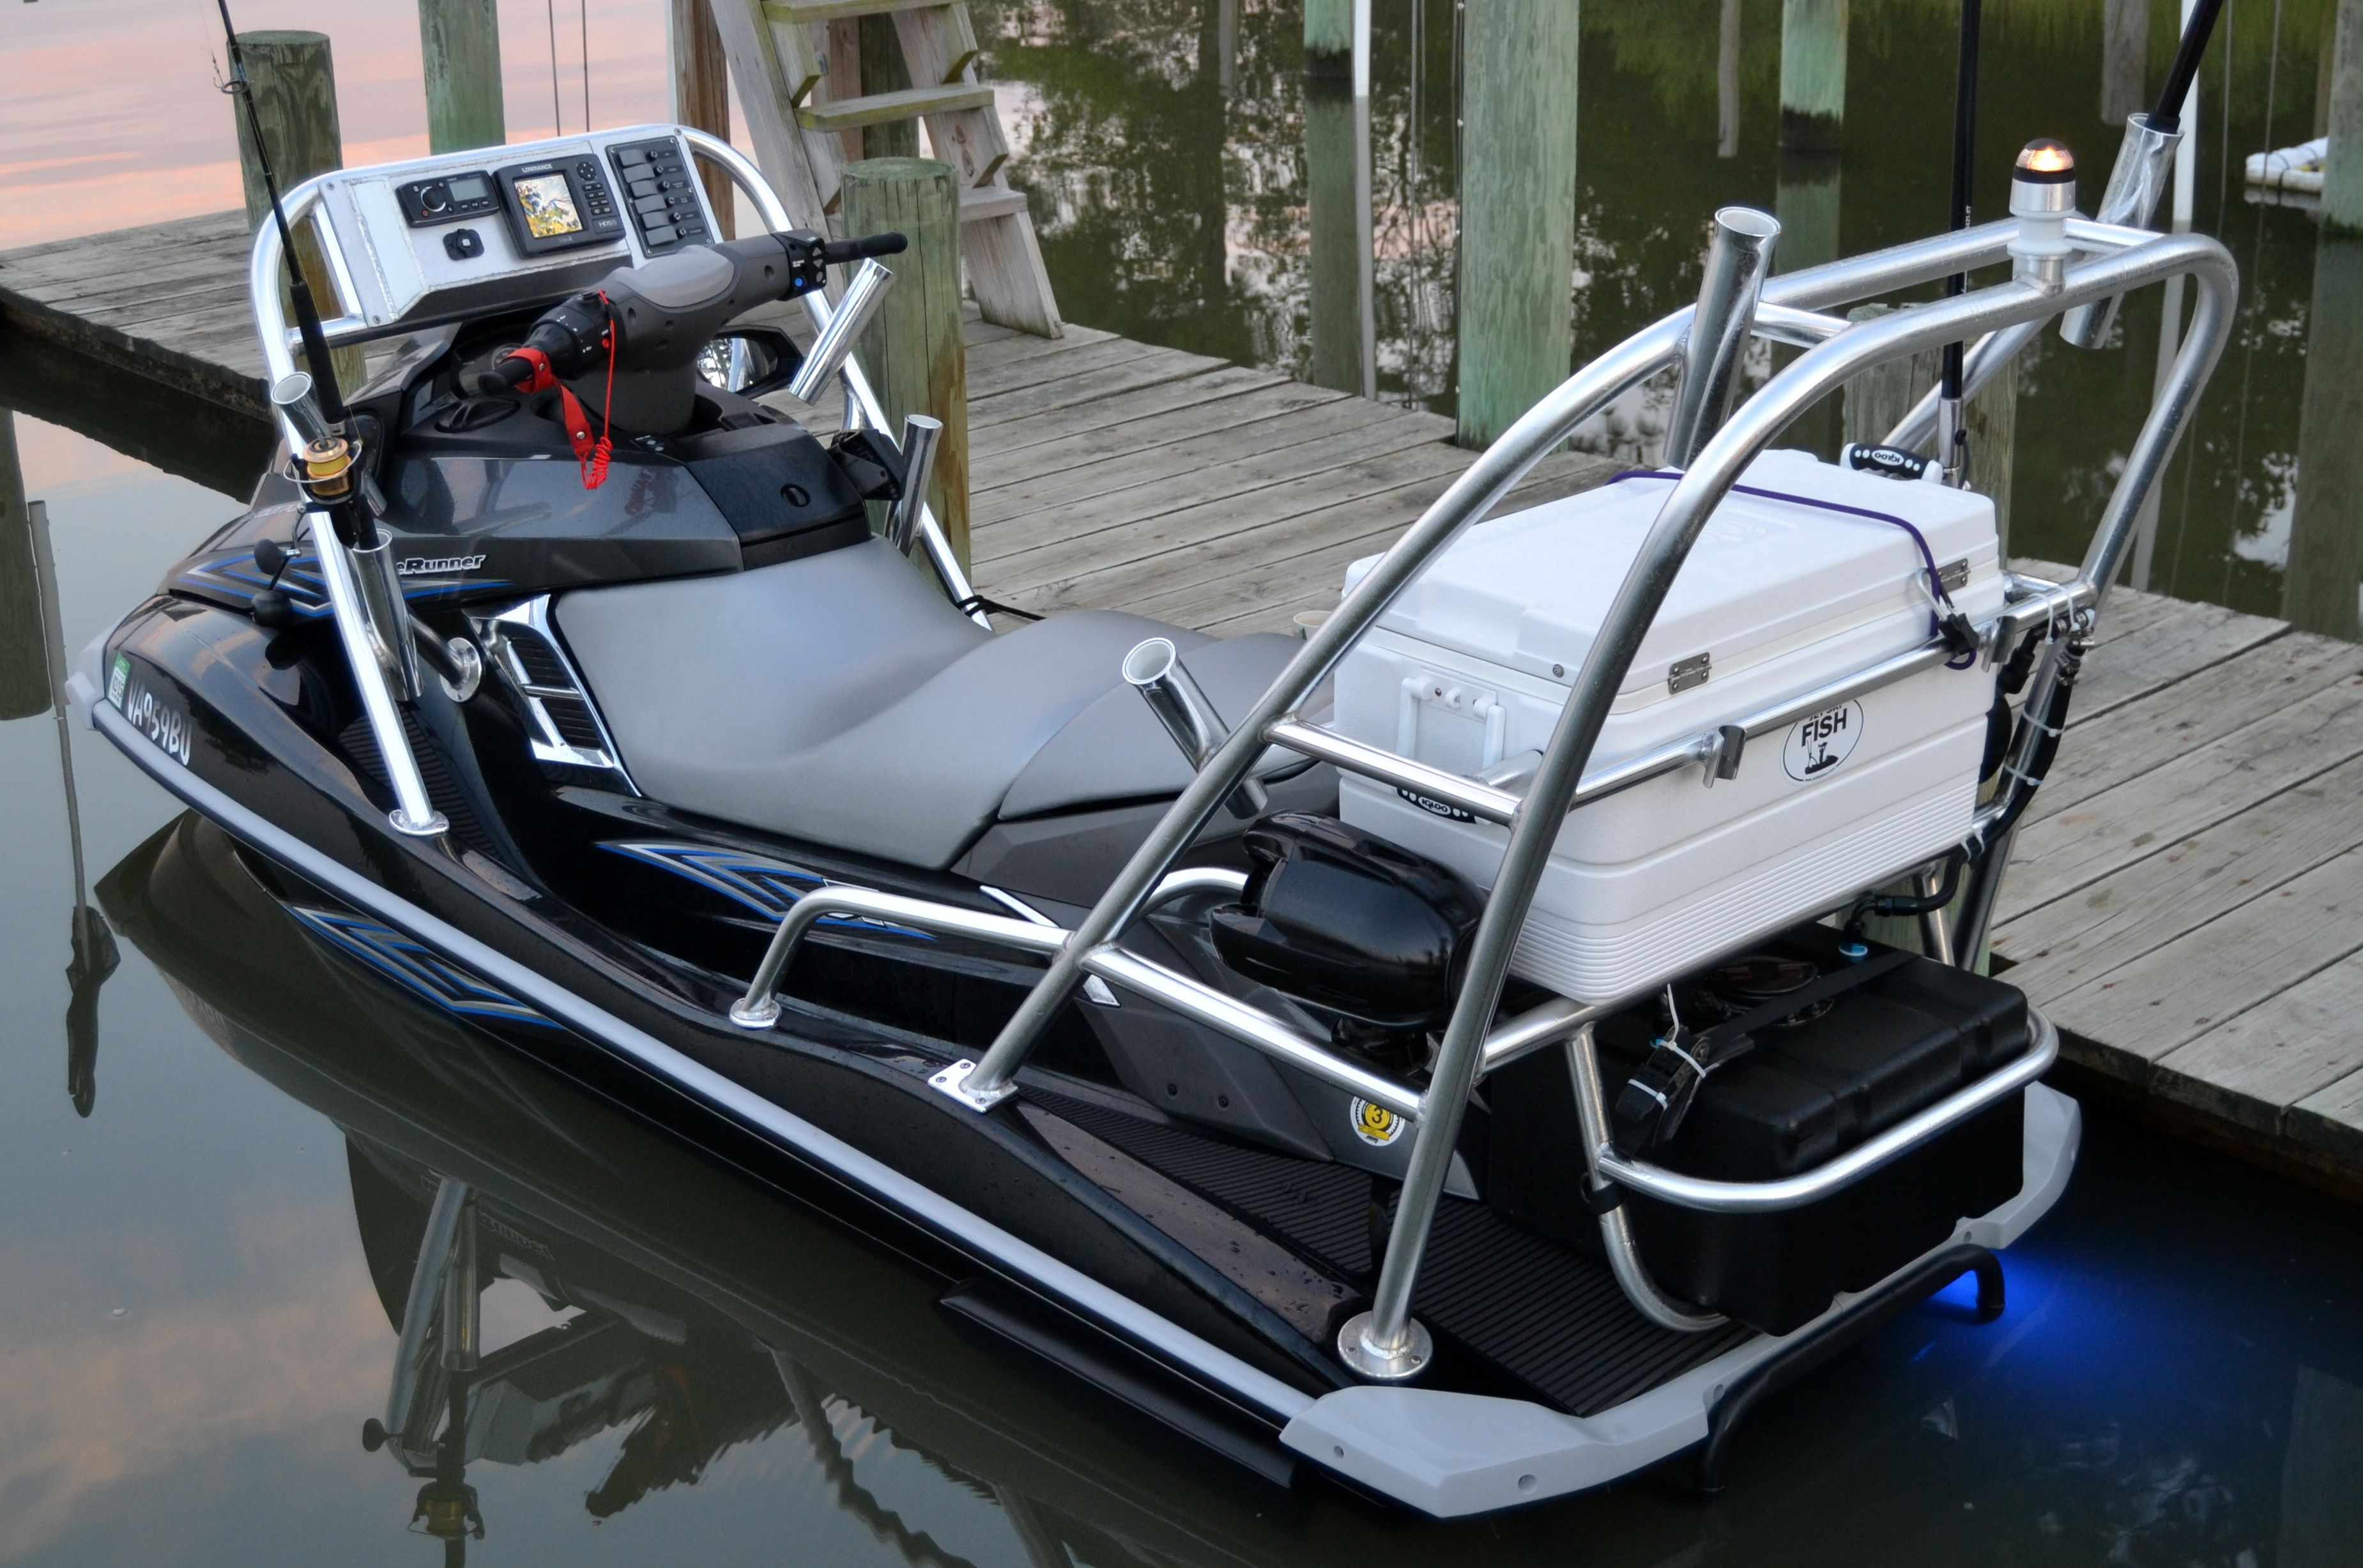 Awesome | Jet ski fishing, Jet ski, Fishing rigs